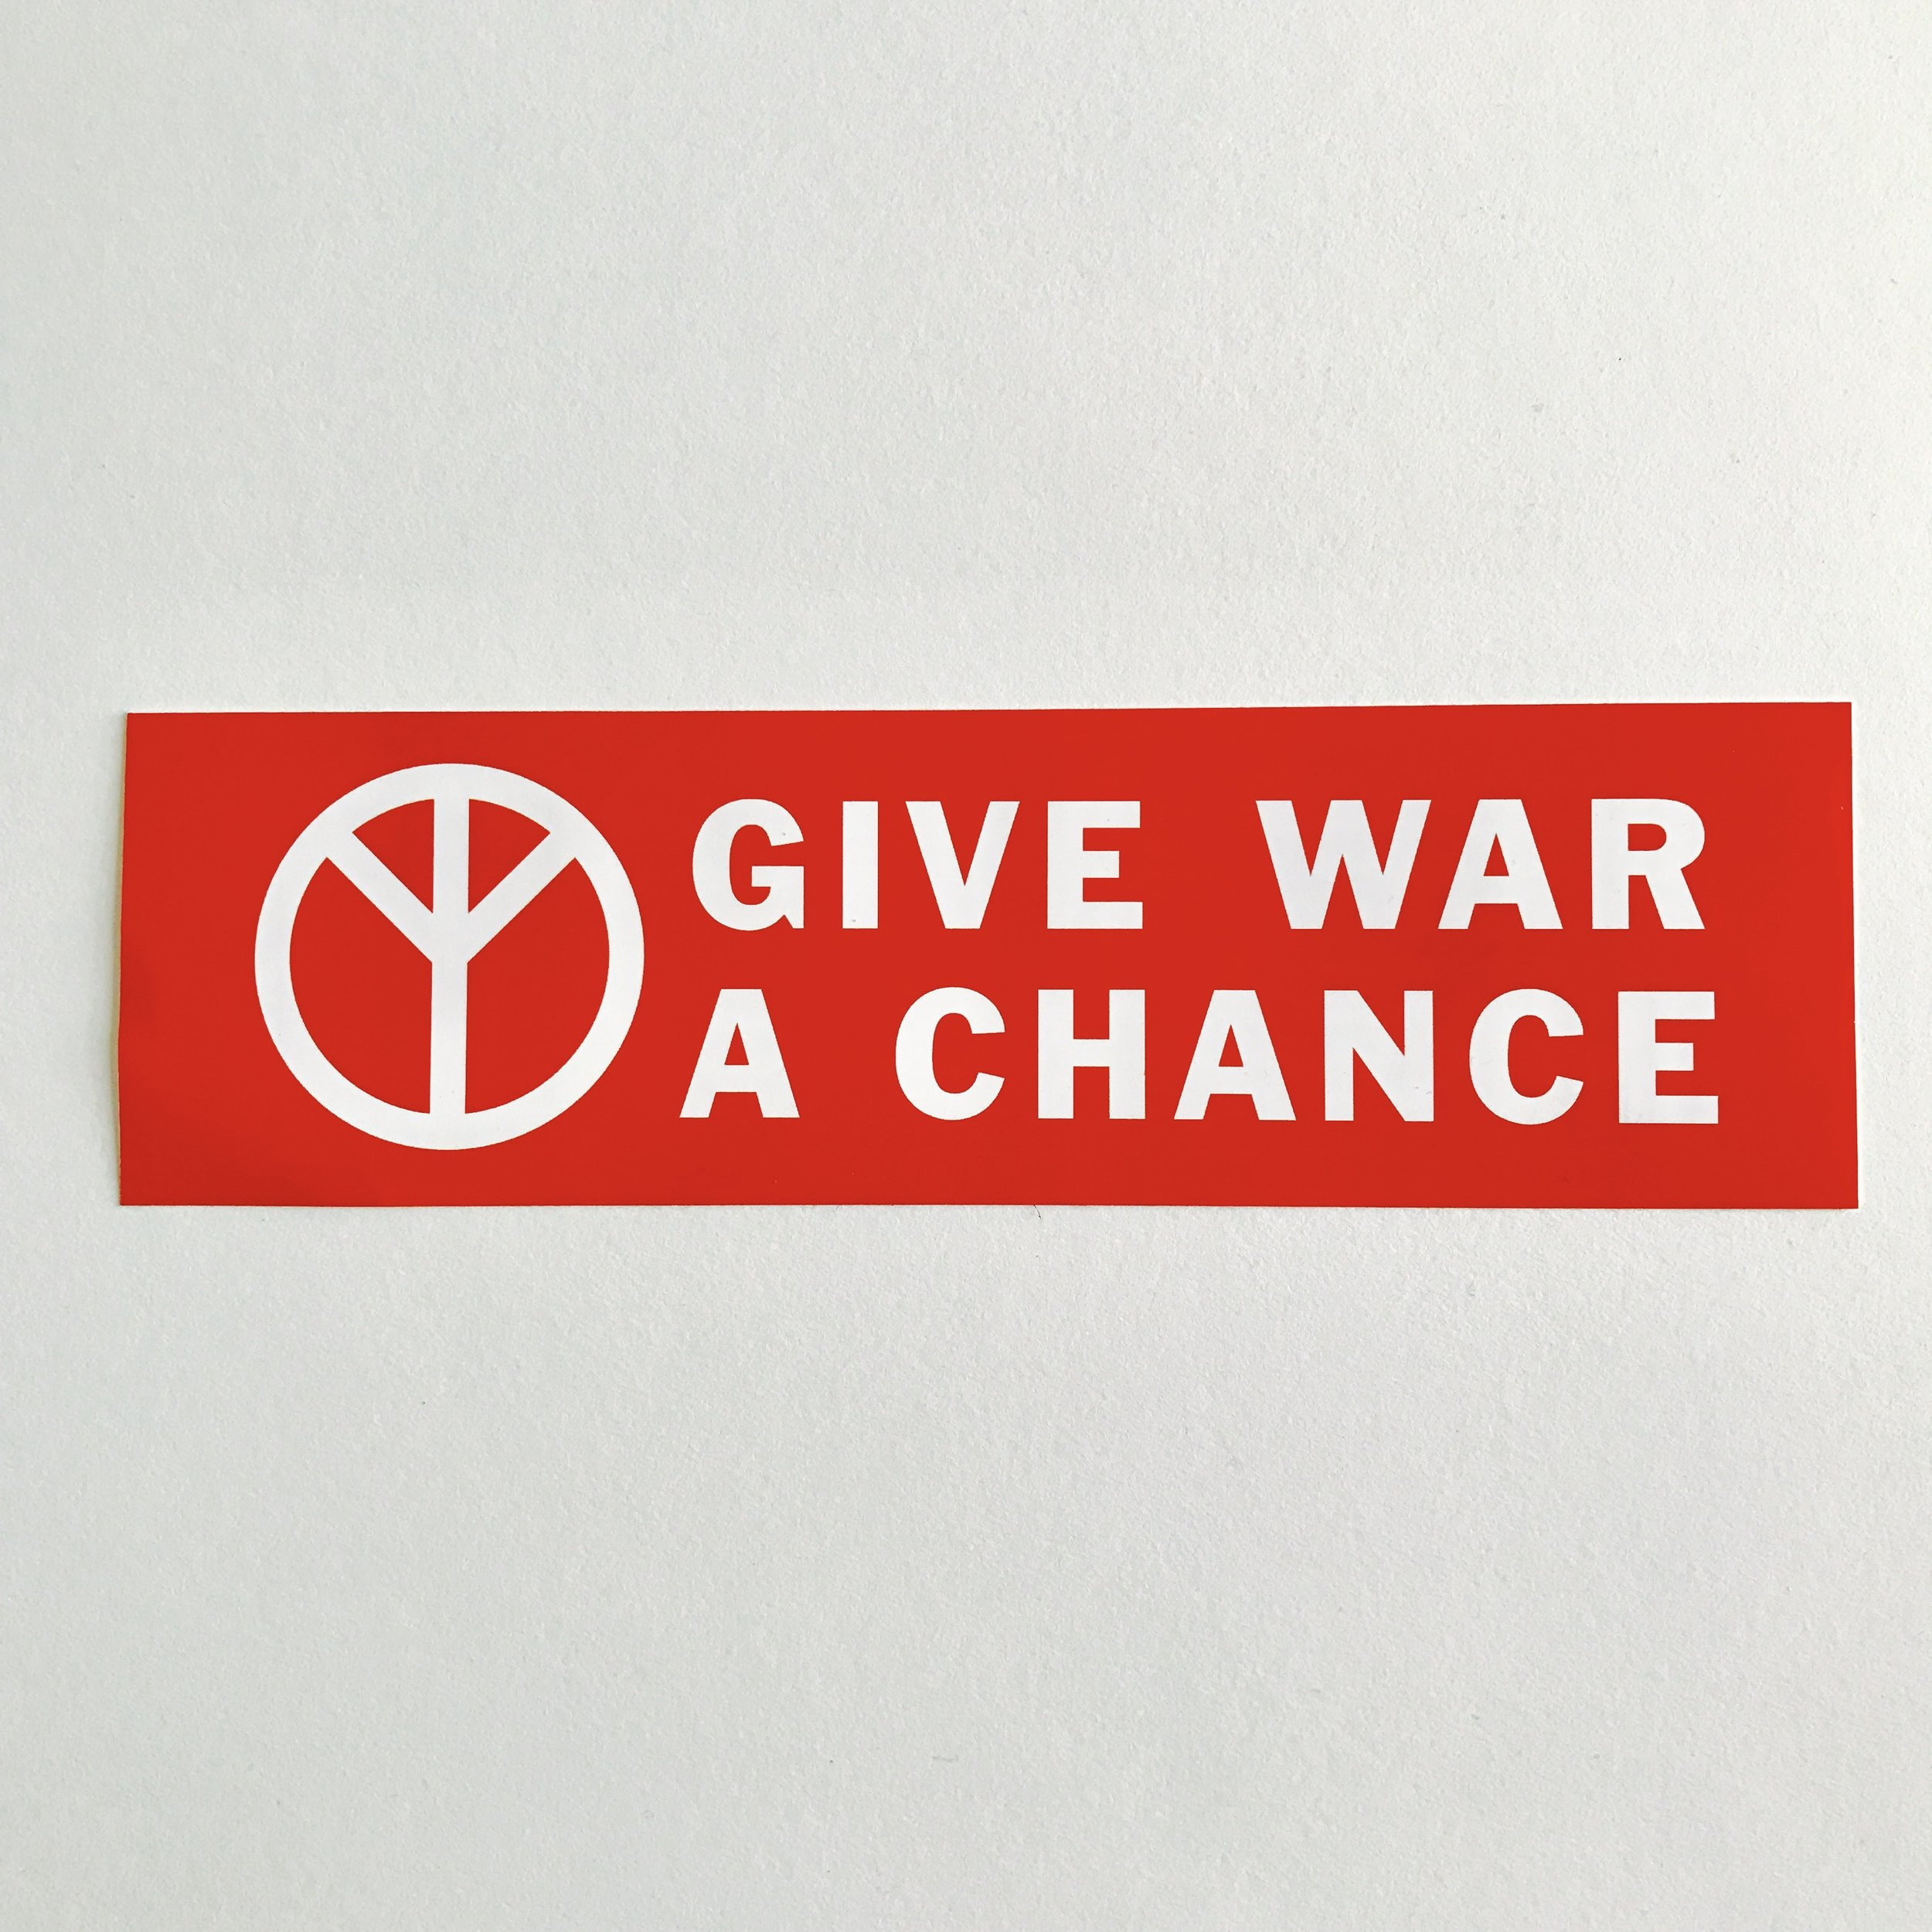 give war a chance sticker.jpg